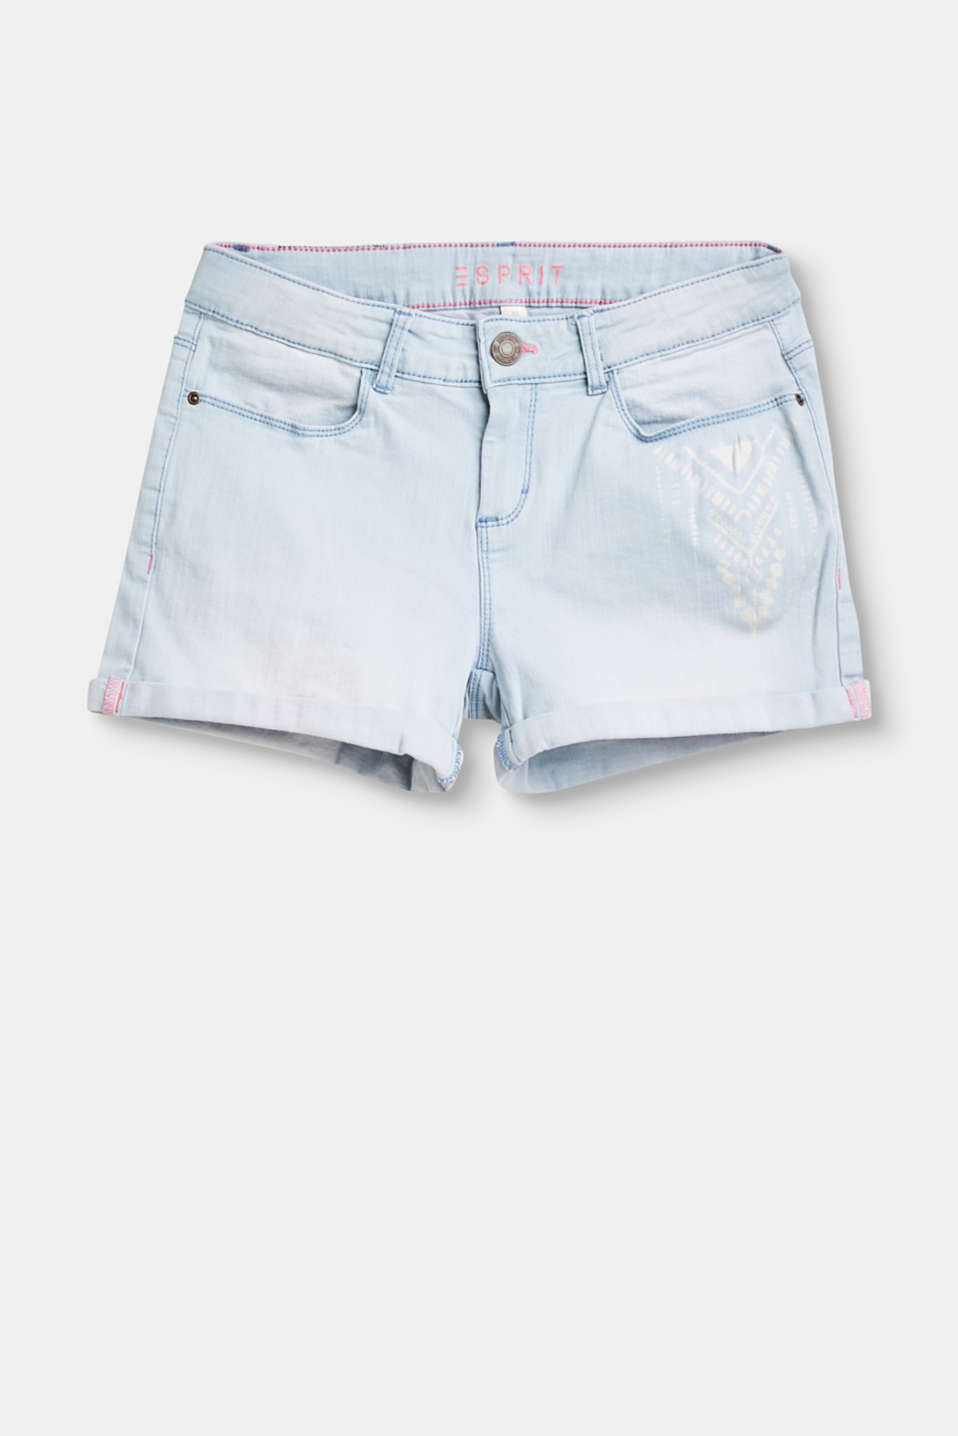 Esprit - Stretchy denim shorts with an ikat print